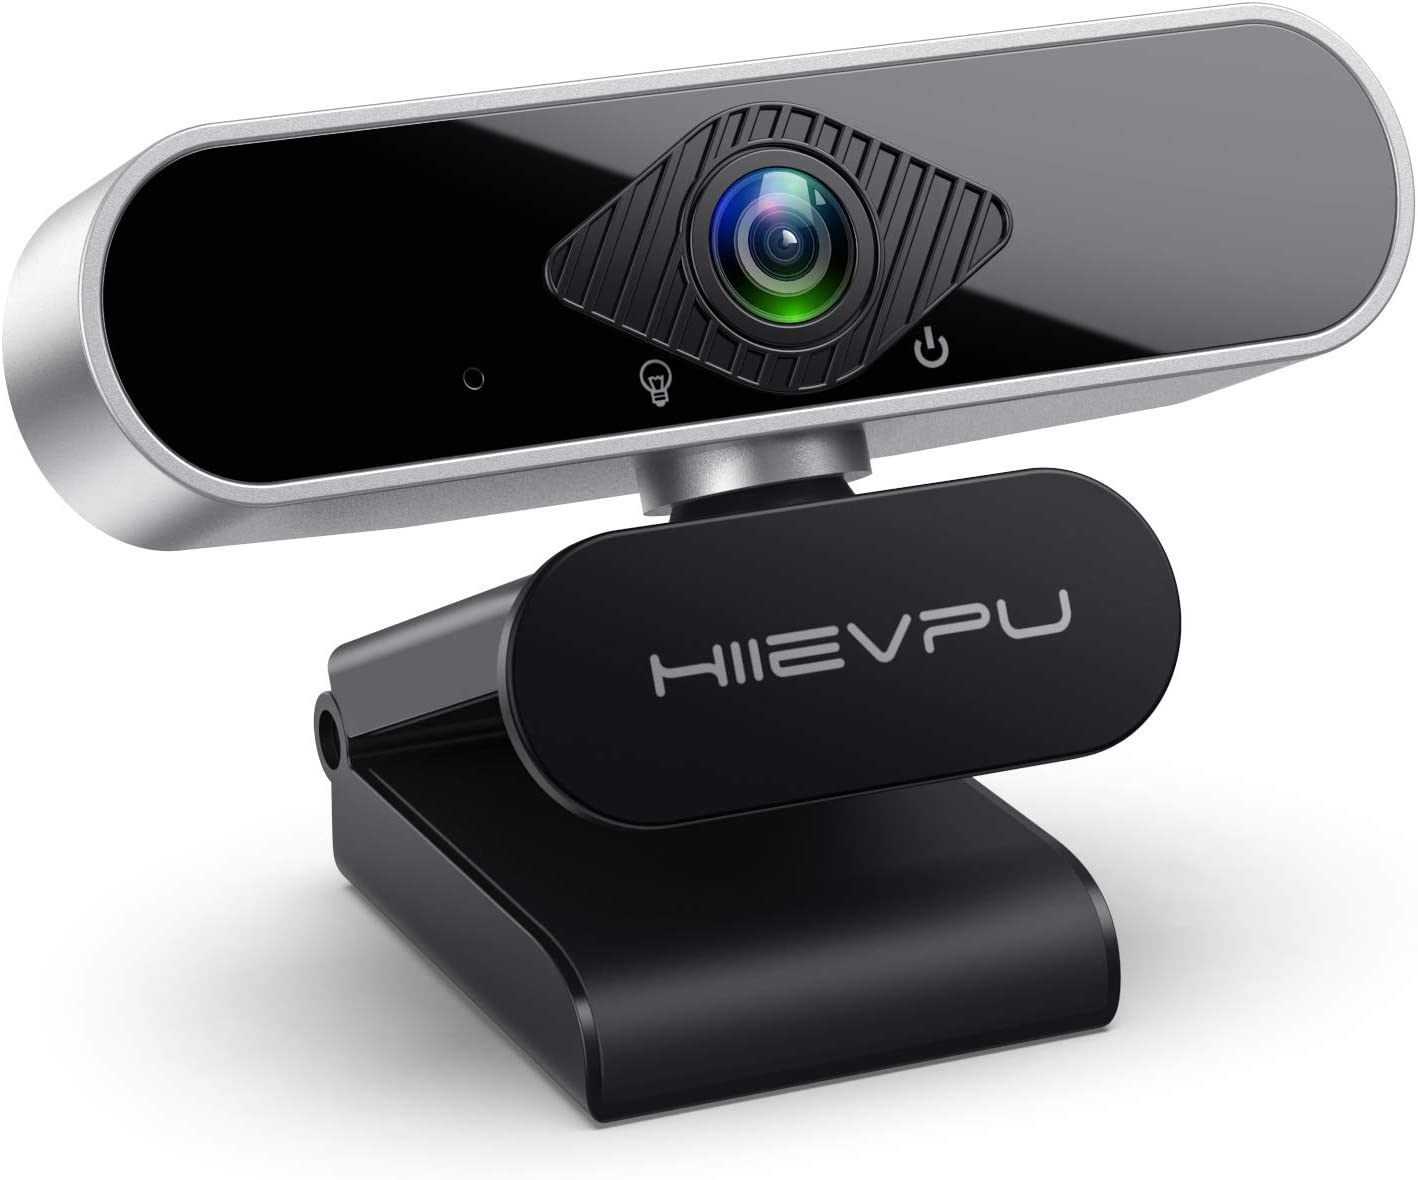 Webcam with Chicago Mall Microphone for PC Hiievpu 1080p 1 P Max 47% OFF Step USB